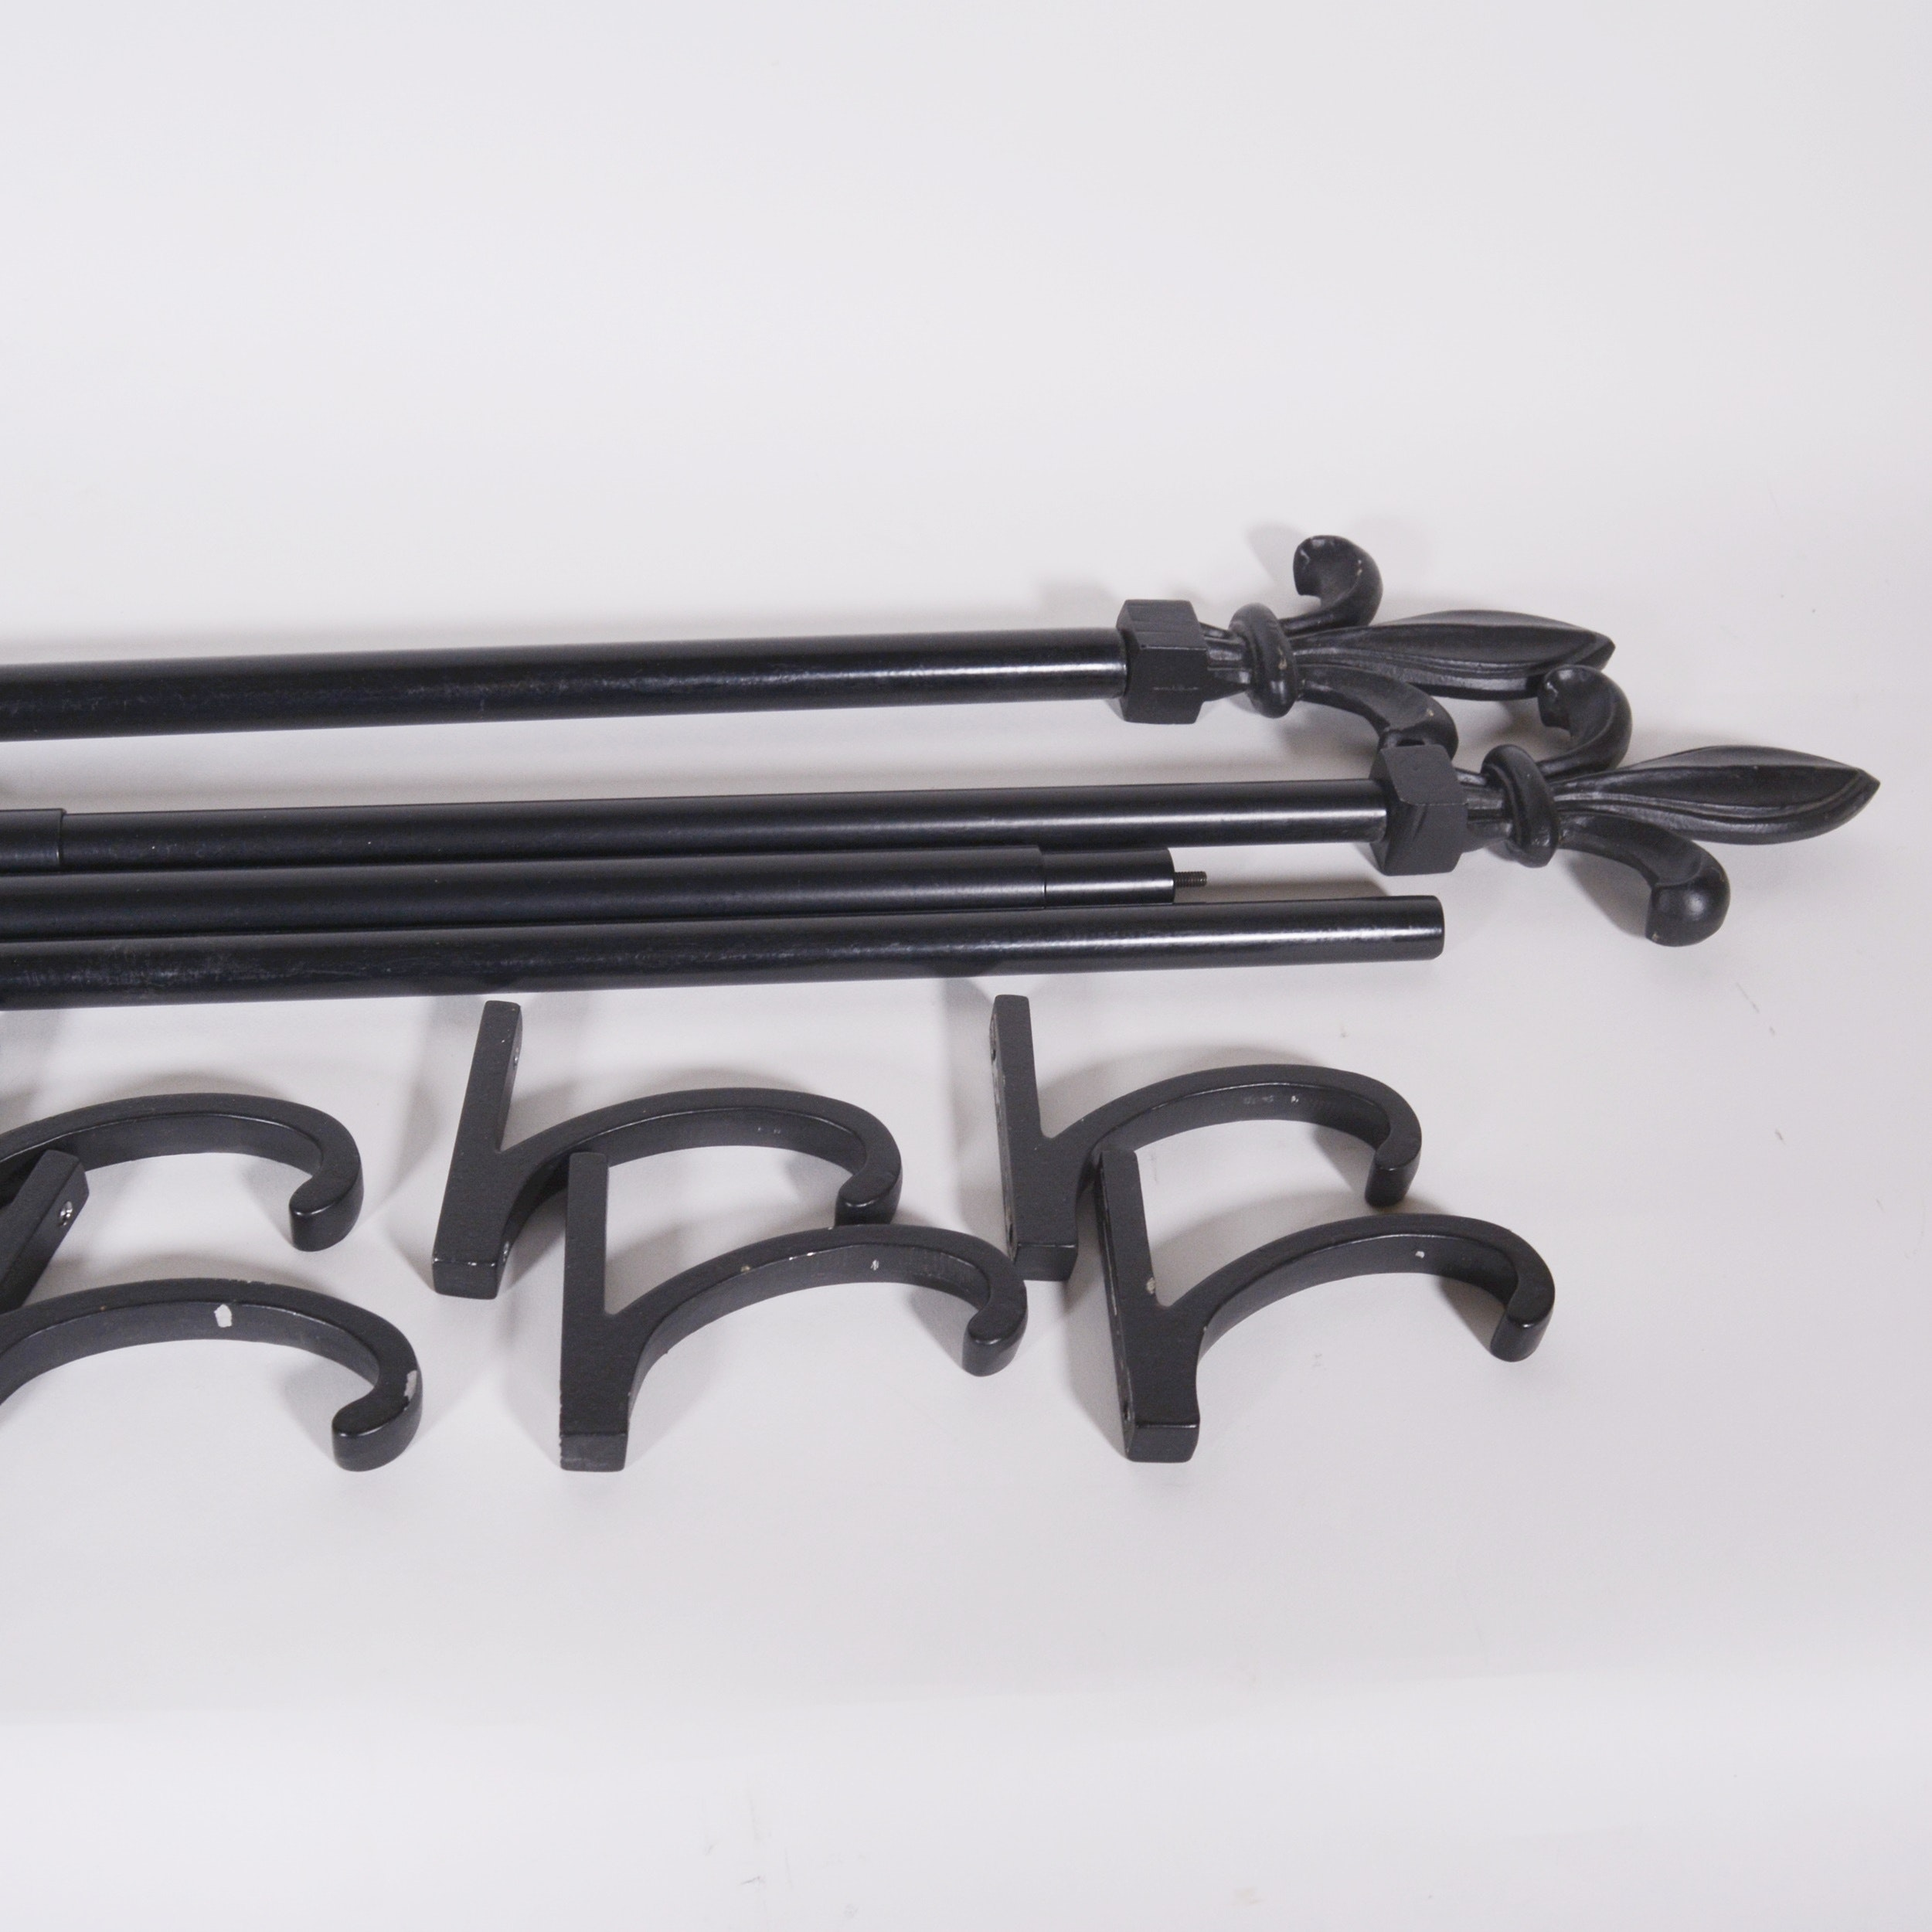 Black Metal Curtain Rods With Fleur-de-Lis Finials and Brackets